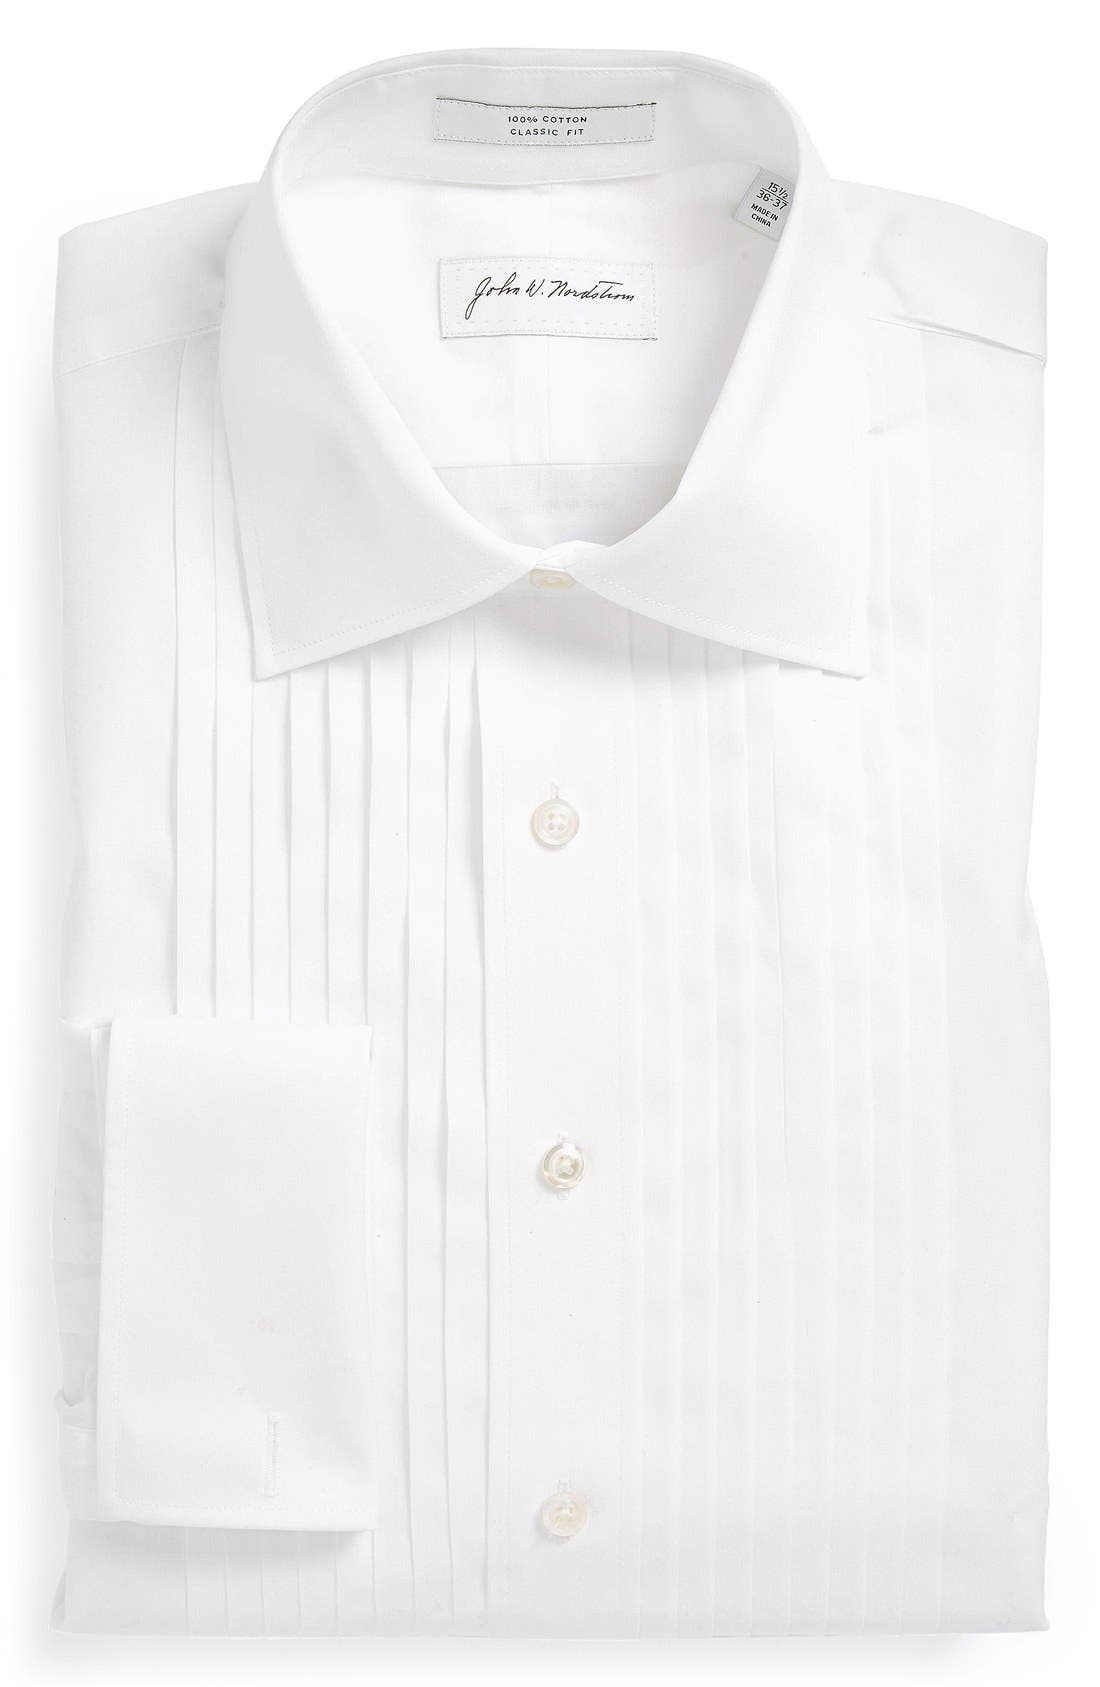 Main Image - John W. Nordstrom® Classic Fit French Cuff Tuxedo Shirt